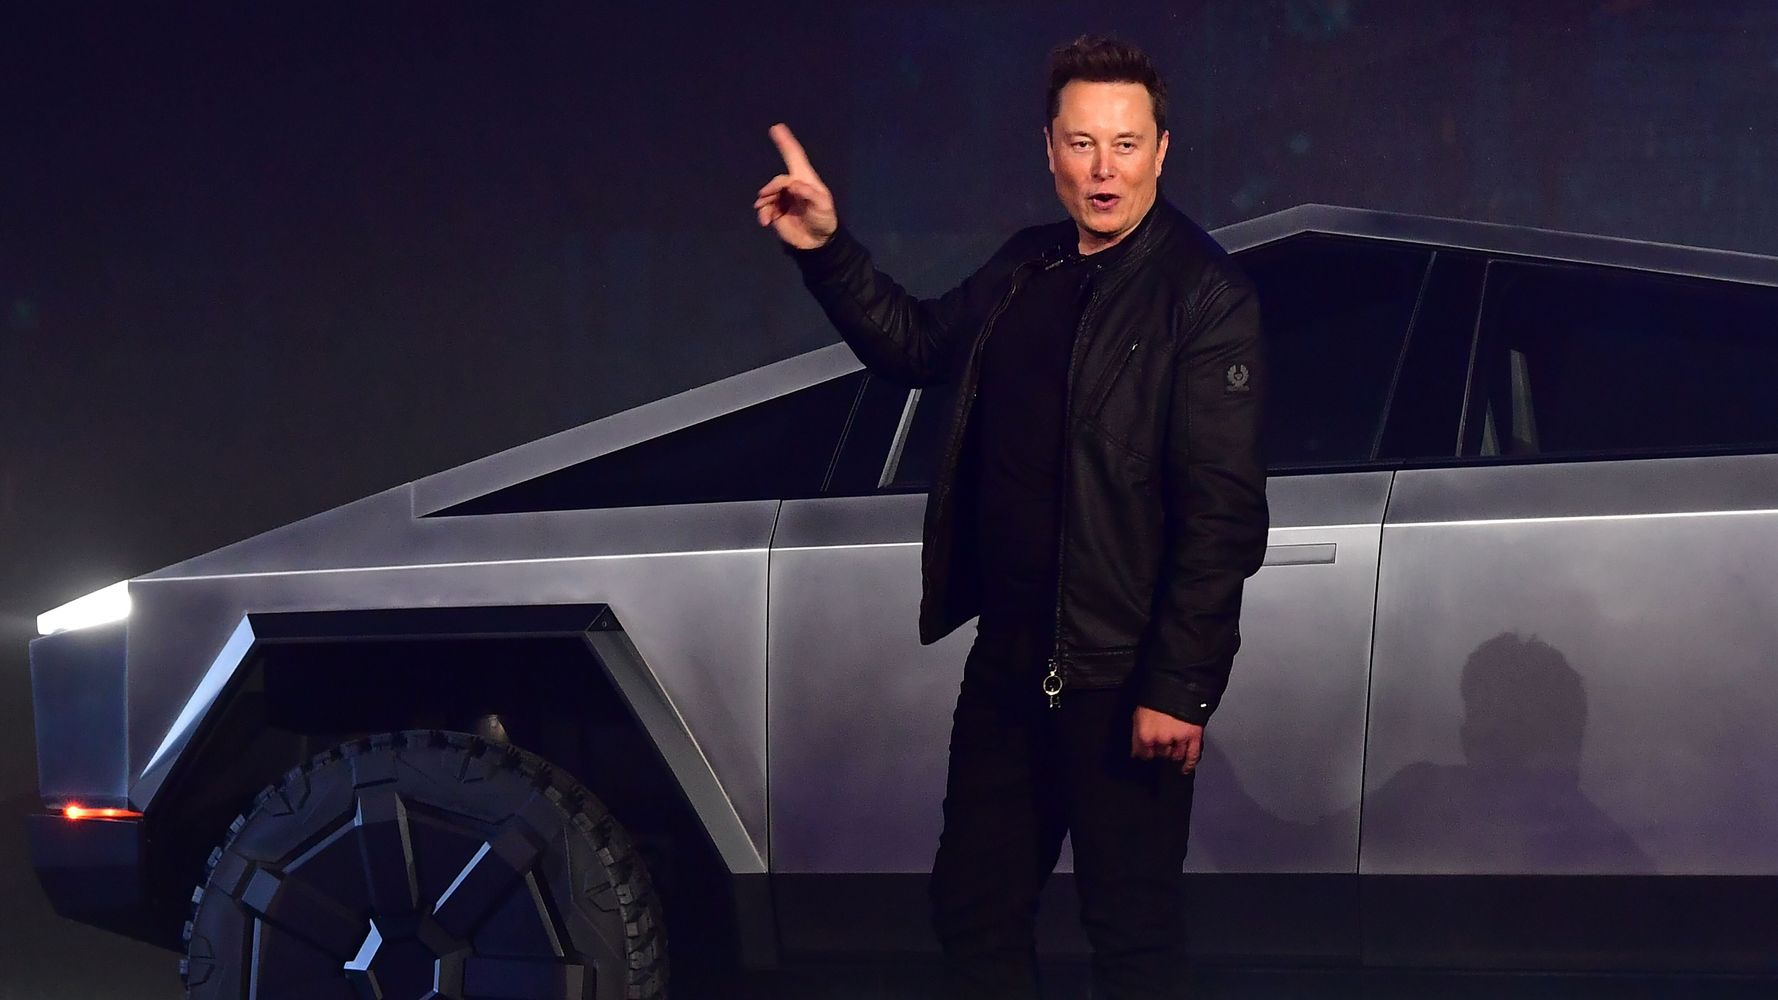 Tesla Just Joined The S&P 500 Index ― Here's Why That's A Big Deal